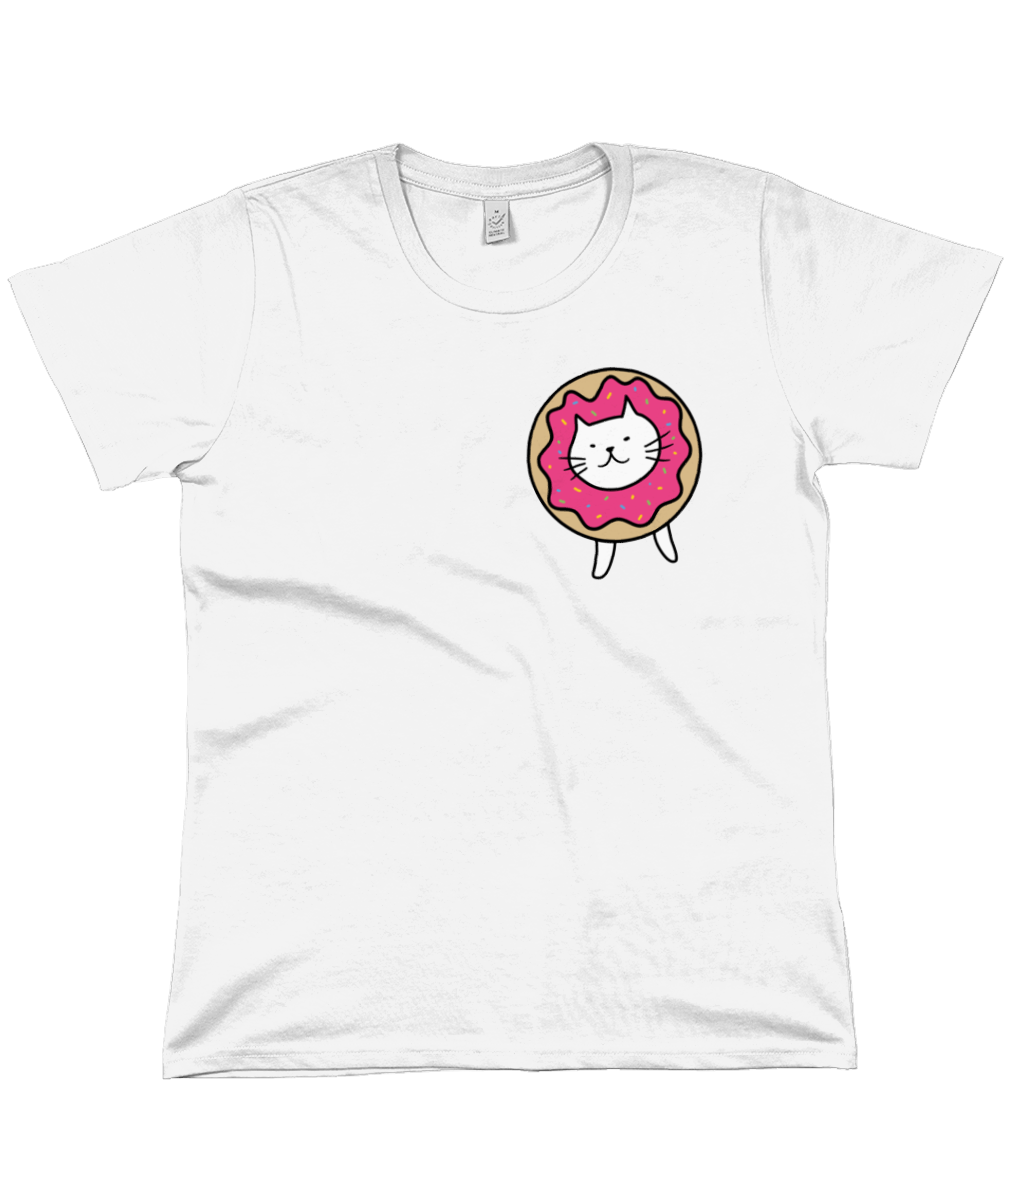 Organic Cotton Women's T-Shirt Cat wearing Doughnut